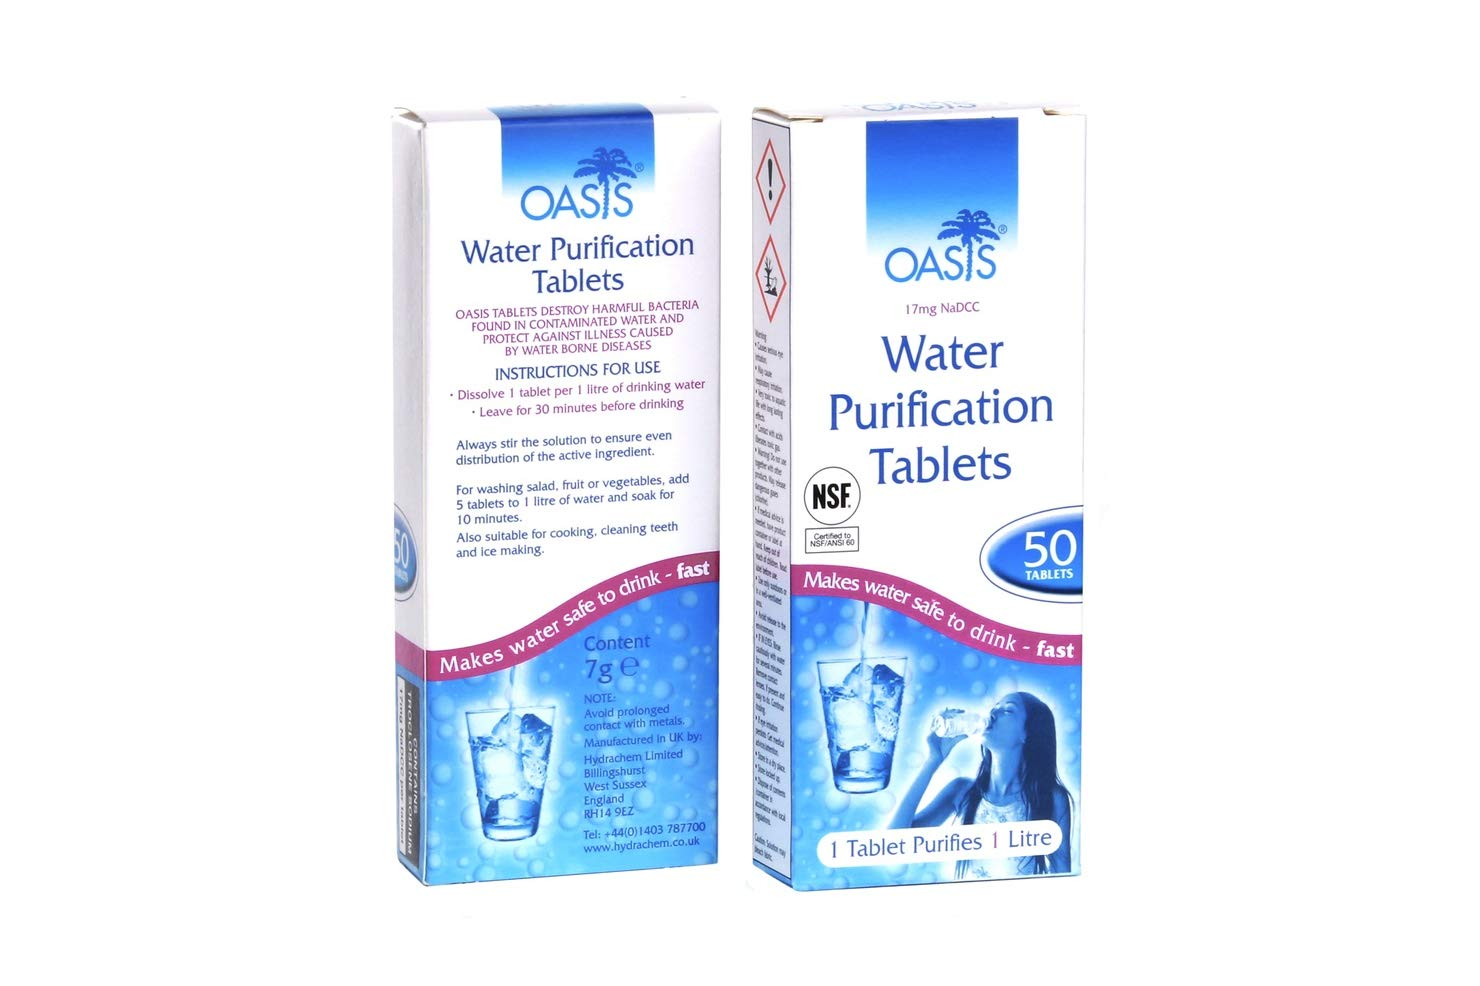 OASIS WATER PURIFICATION TABLETS [2 Packs]: Amazon.es: Deportes y ...